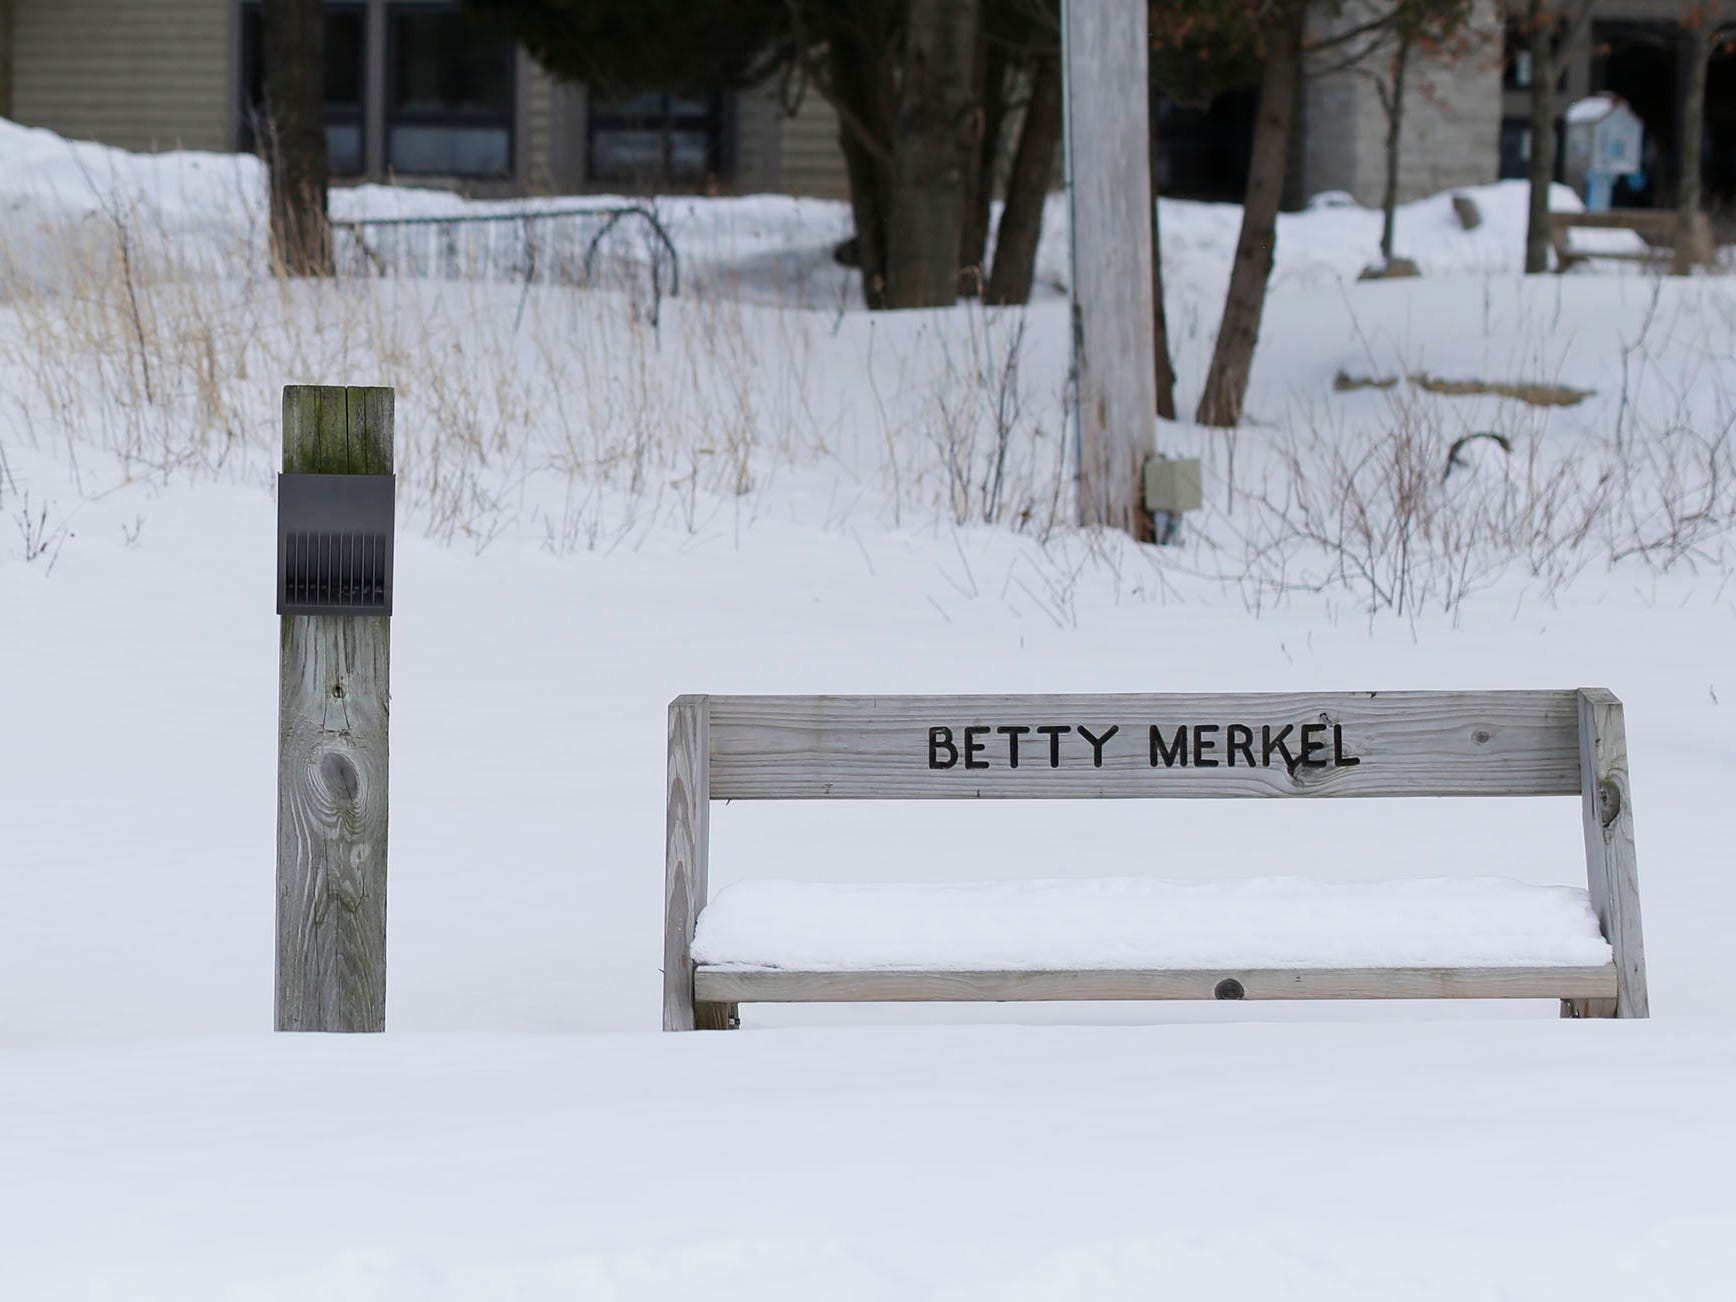 A pair of benches wait for spring at the Ellwood H. May Environmental Park, Tuesday, March 5, 2019, in Sheboygan, Wis.